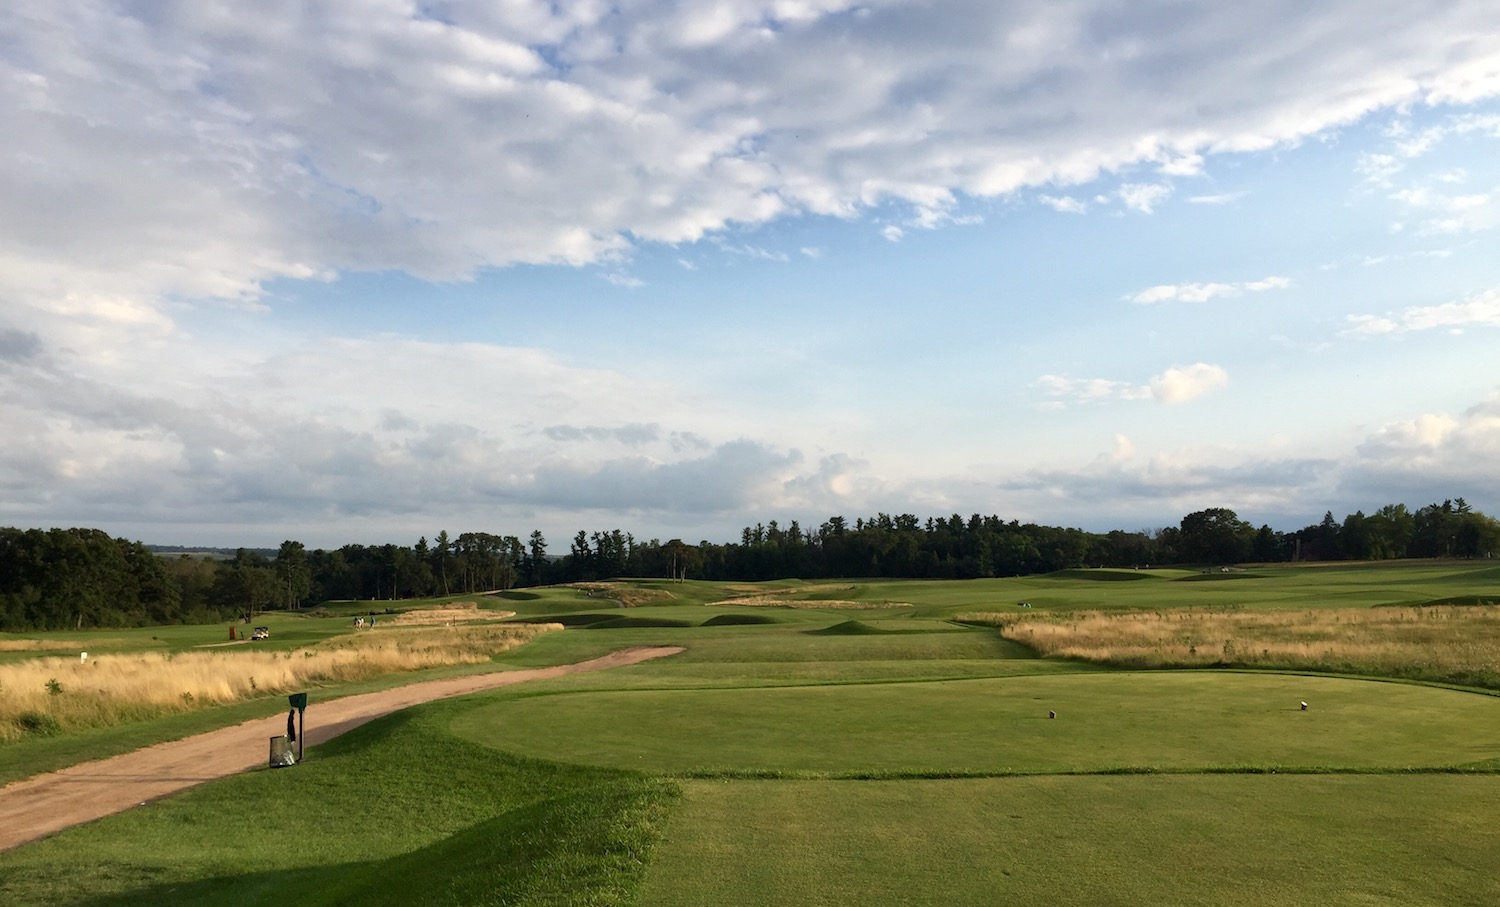 Lawsonia Links is a Langford & Moreau masterpiece in central Wisconsin.